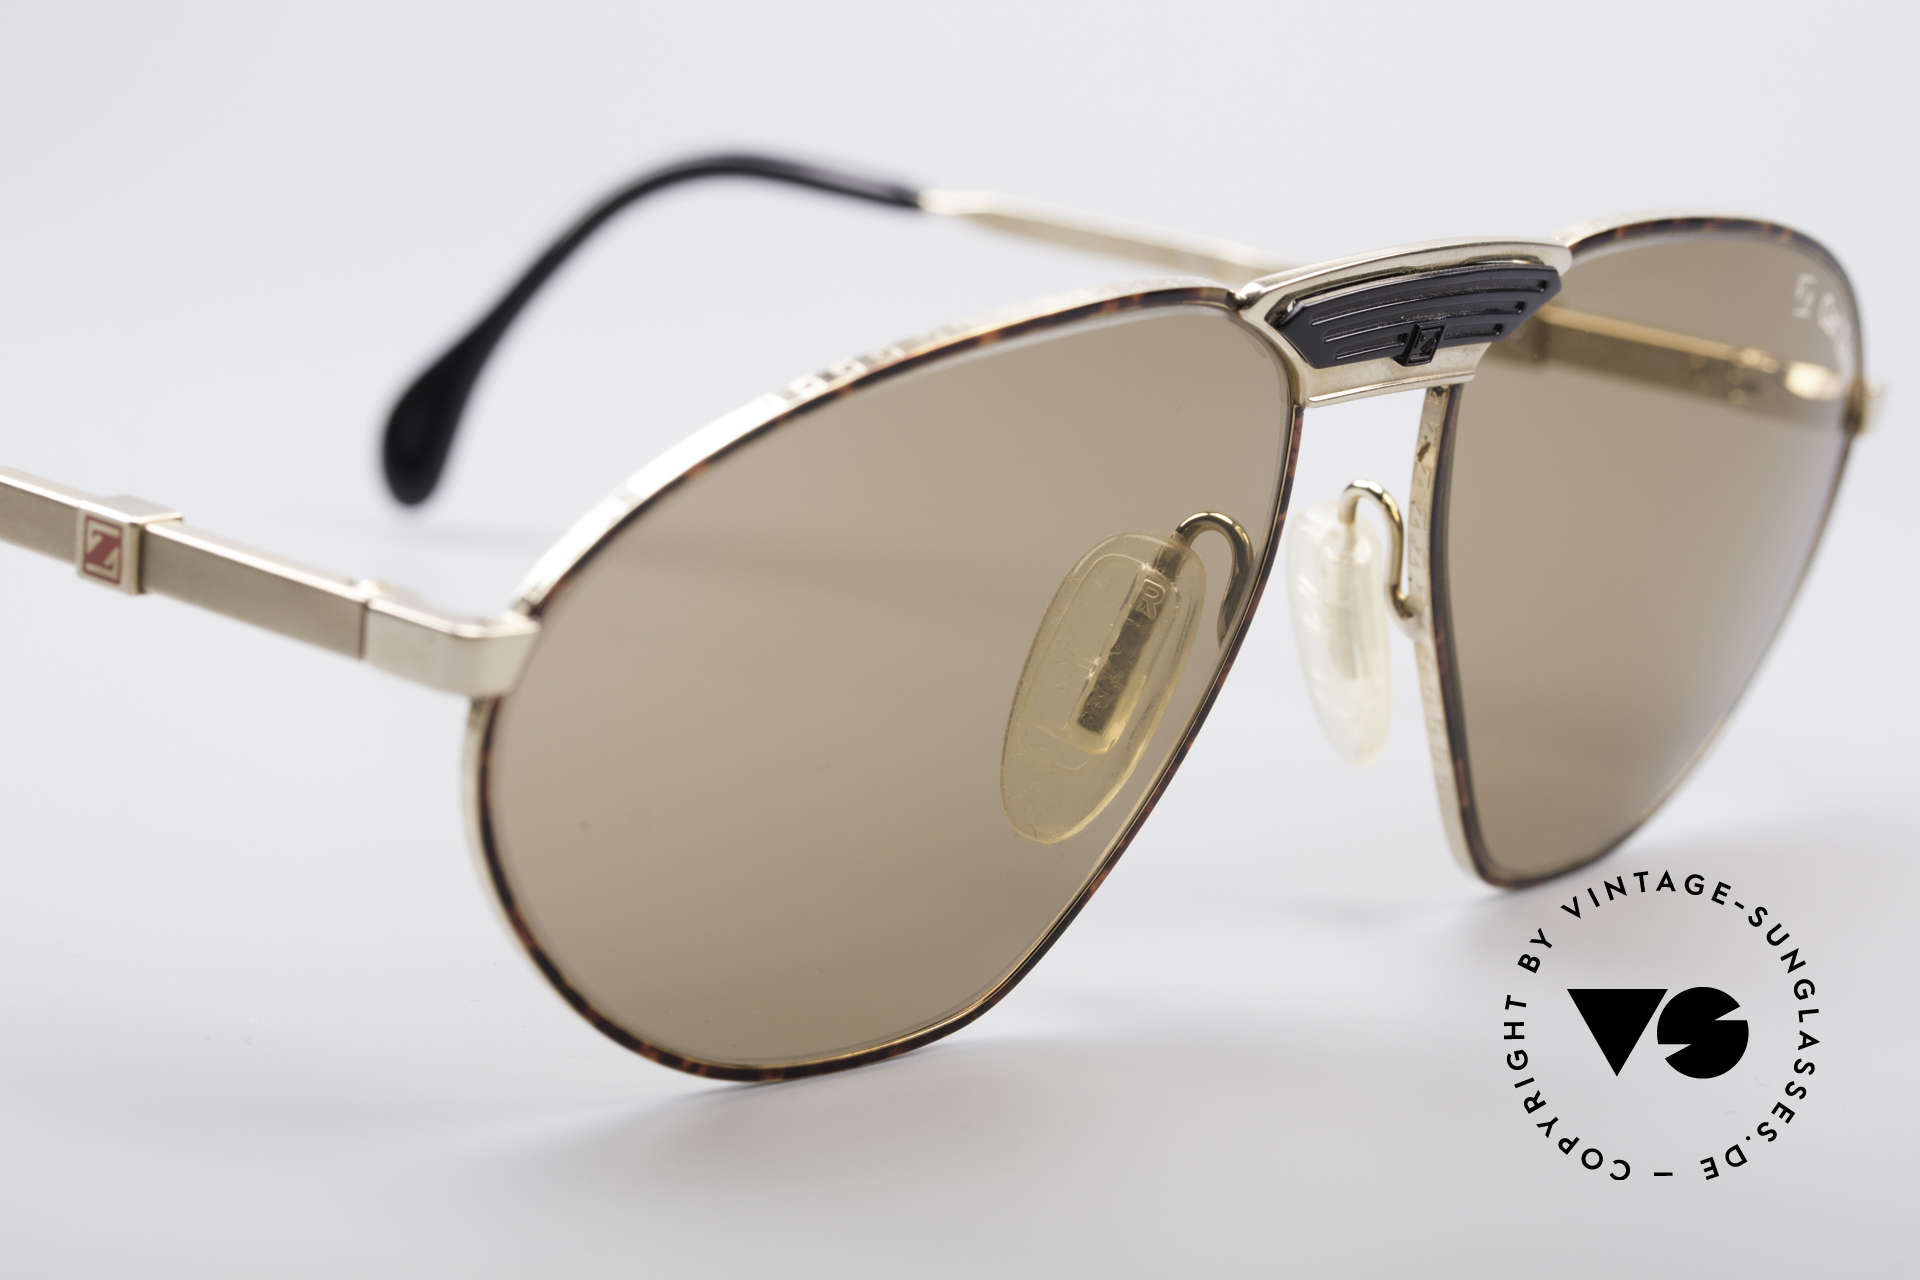 Zeiss 9927 80's Top Quality Shades, never worn (like all our vintage Zeiss 1980's eyewear), Made for Men